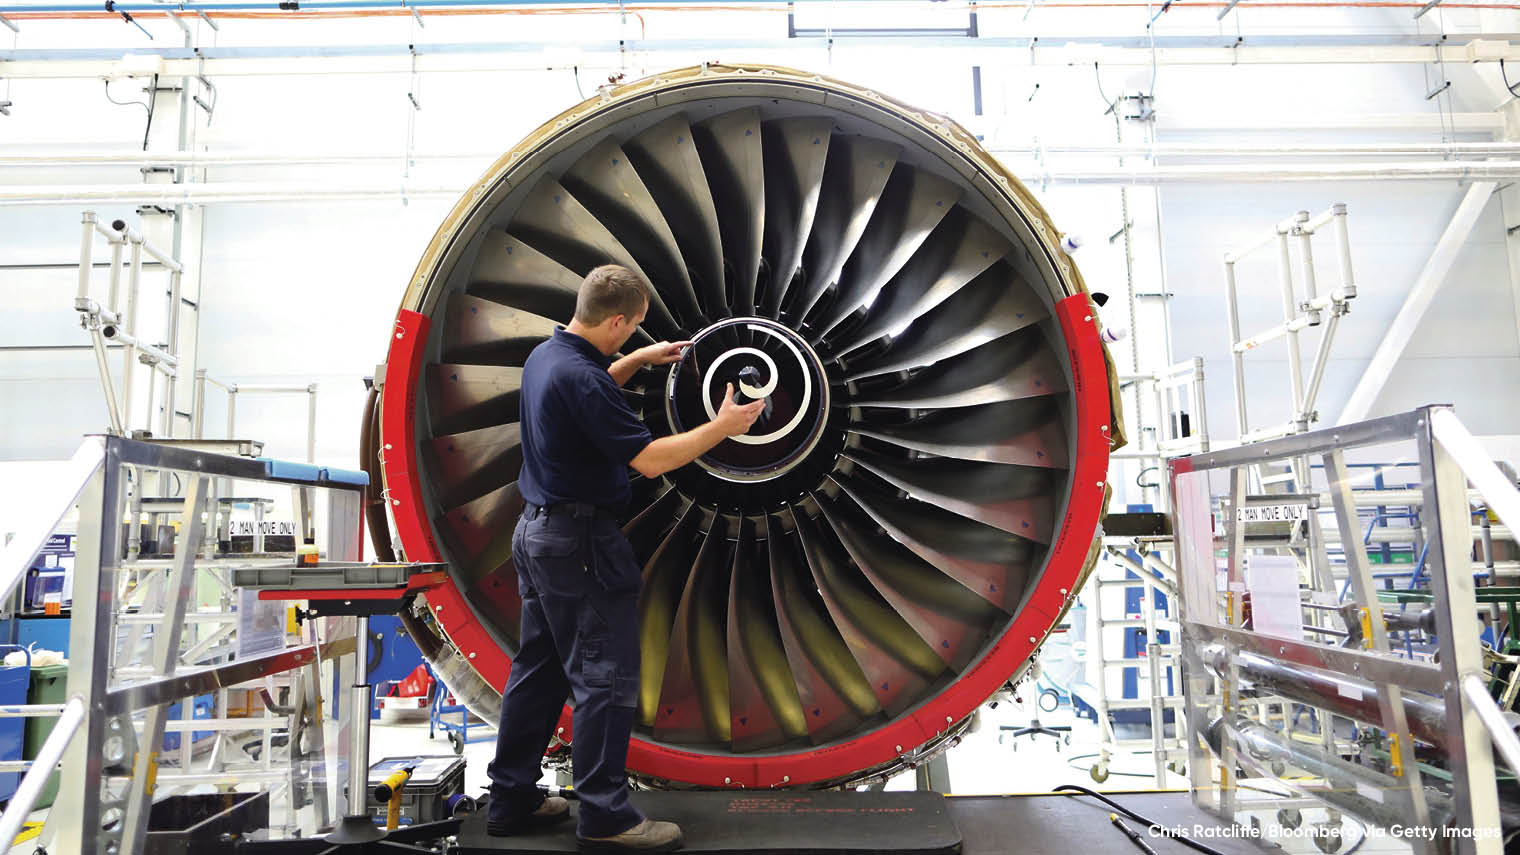 Rolls-Royce's IoT systems notify the engineering company when maintenance and upgrades are due